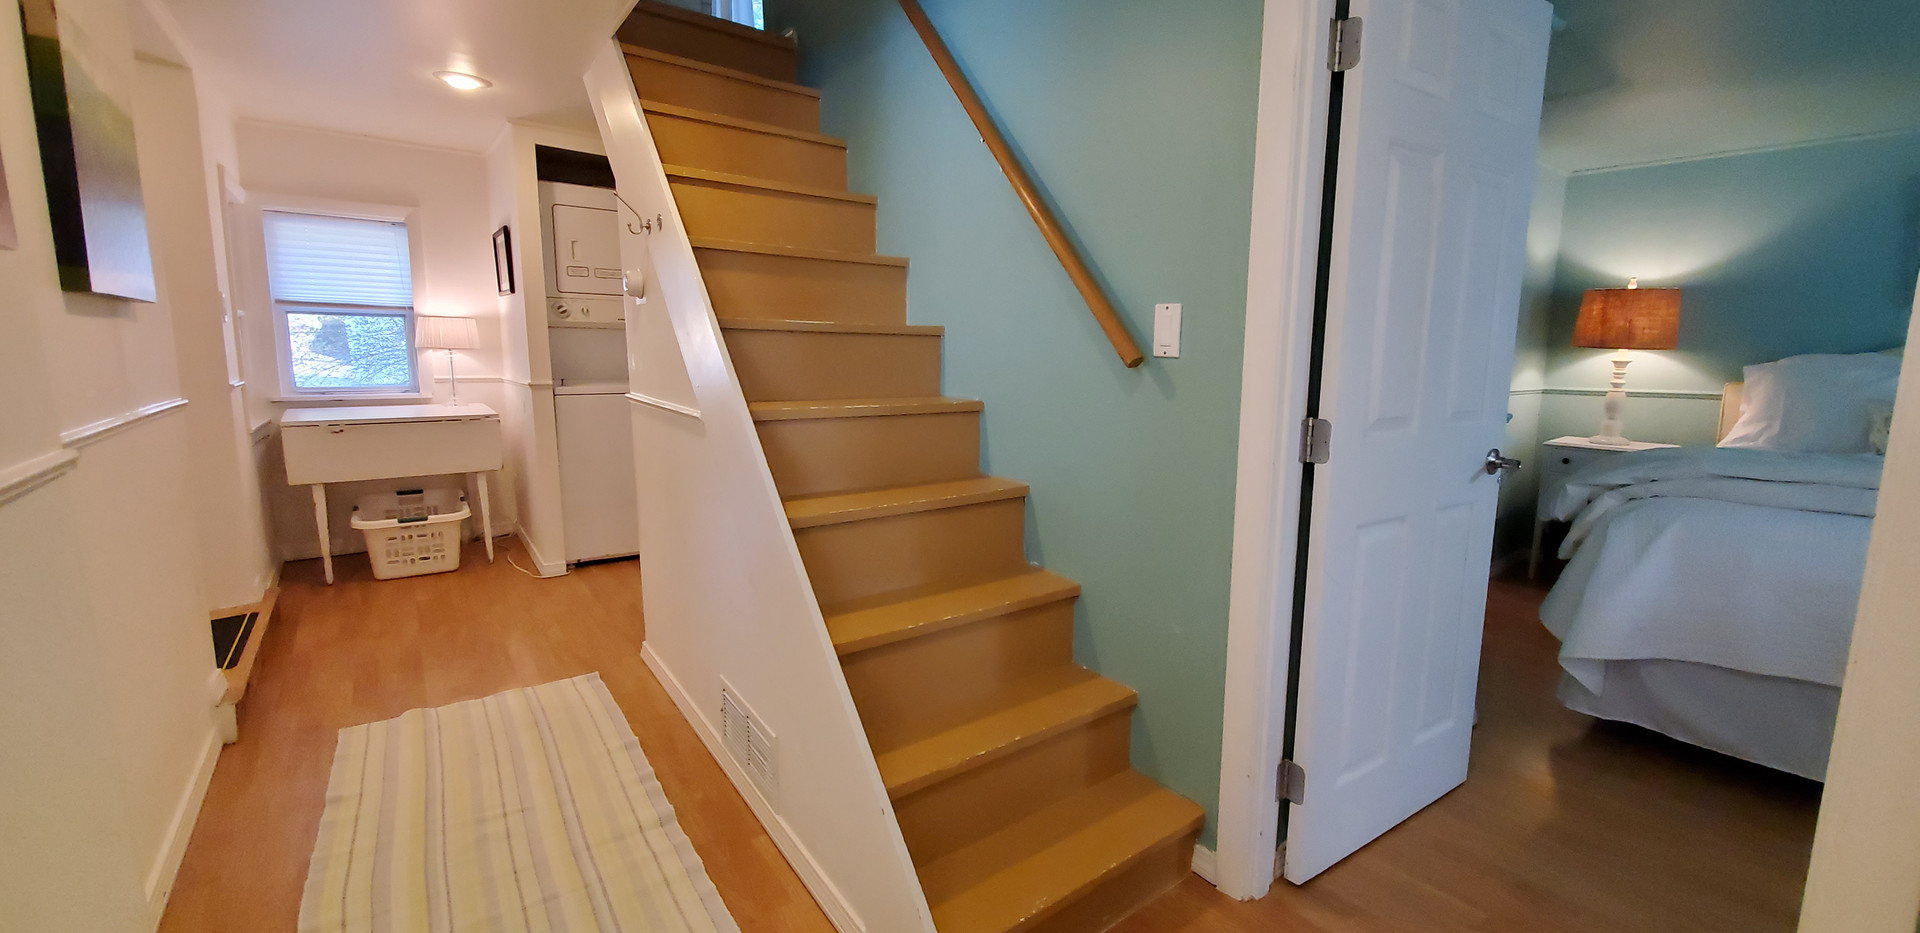 Stair to second bedroom and laundry beyond.